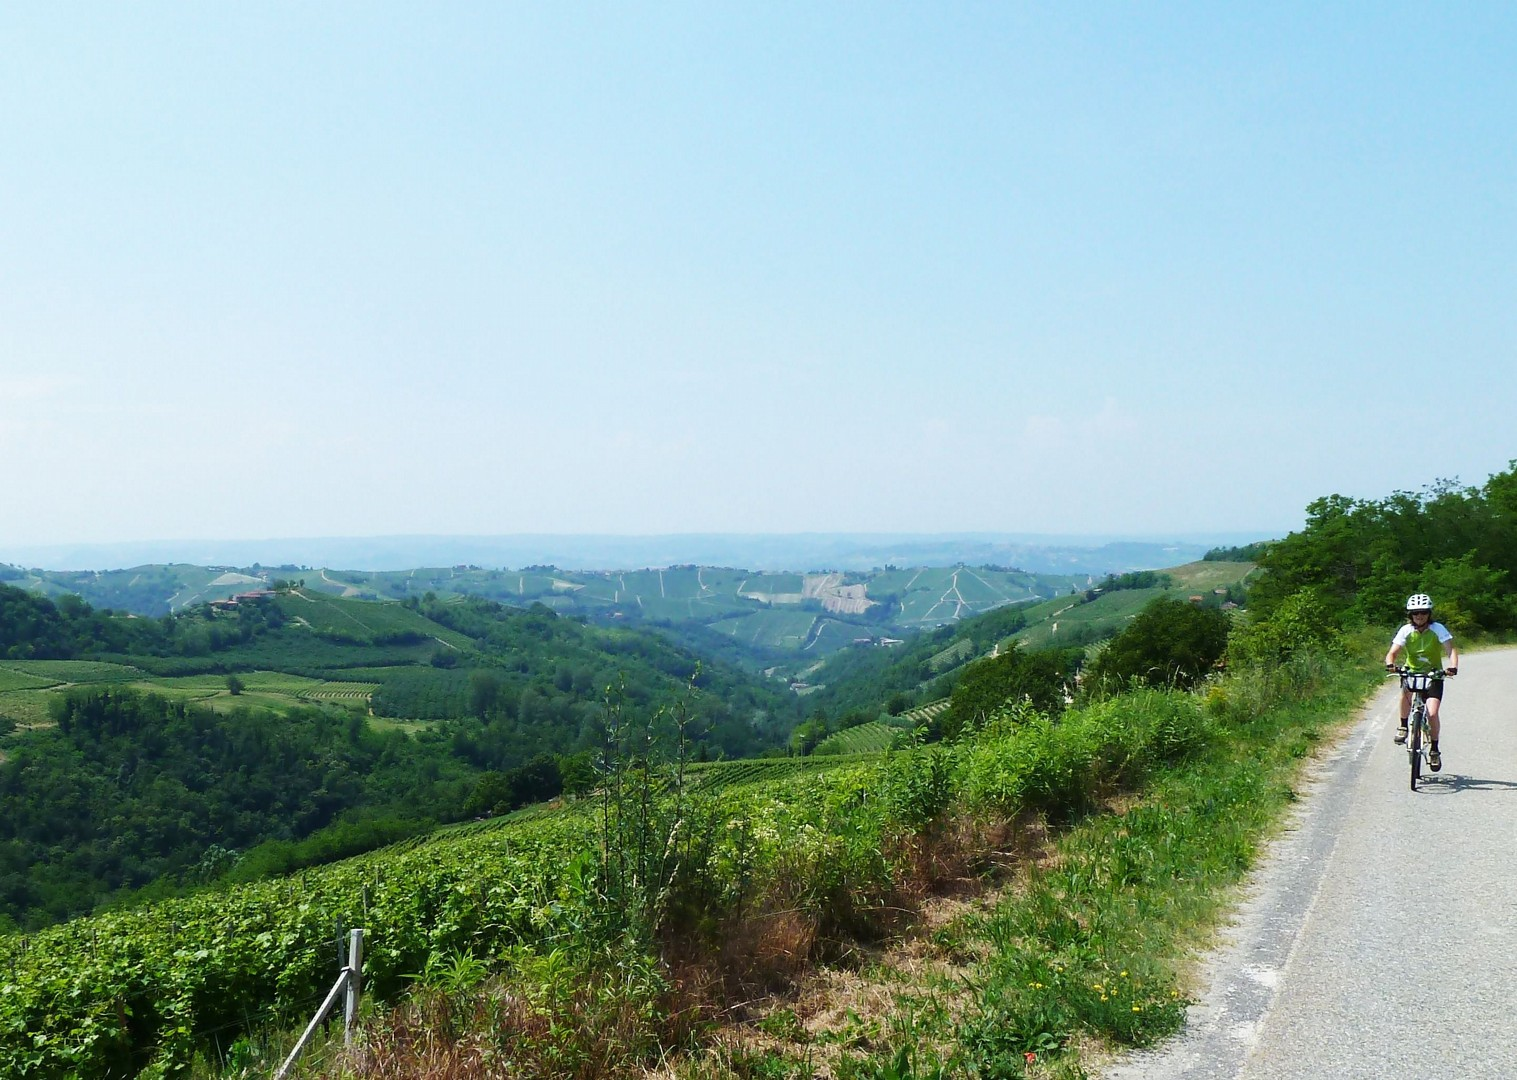 leisure-cycling-holiday-italy-piemontes-vineyards-and-views.jpg - Italy - Piemonte - Vineyards and Views - Self-Guided Leisure Cycling Holiday - Leisure Cycling